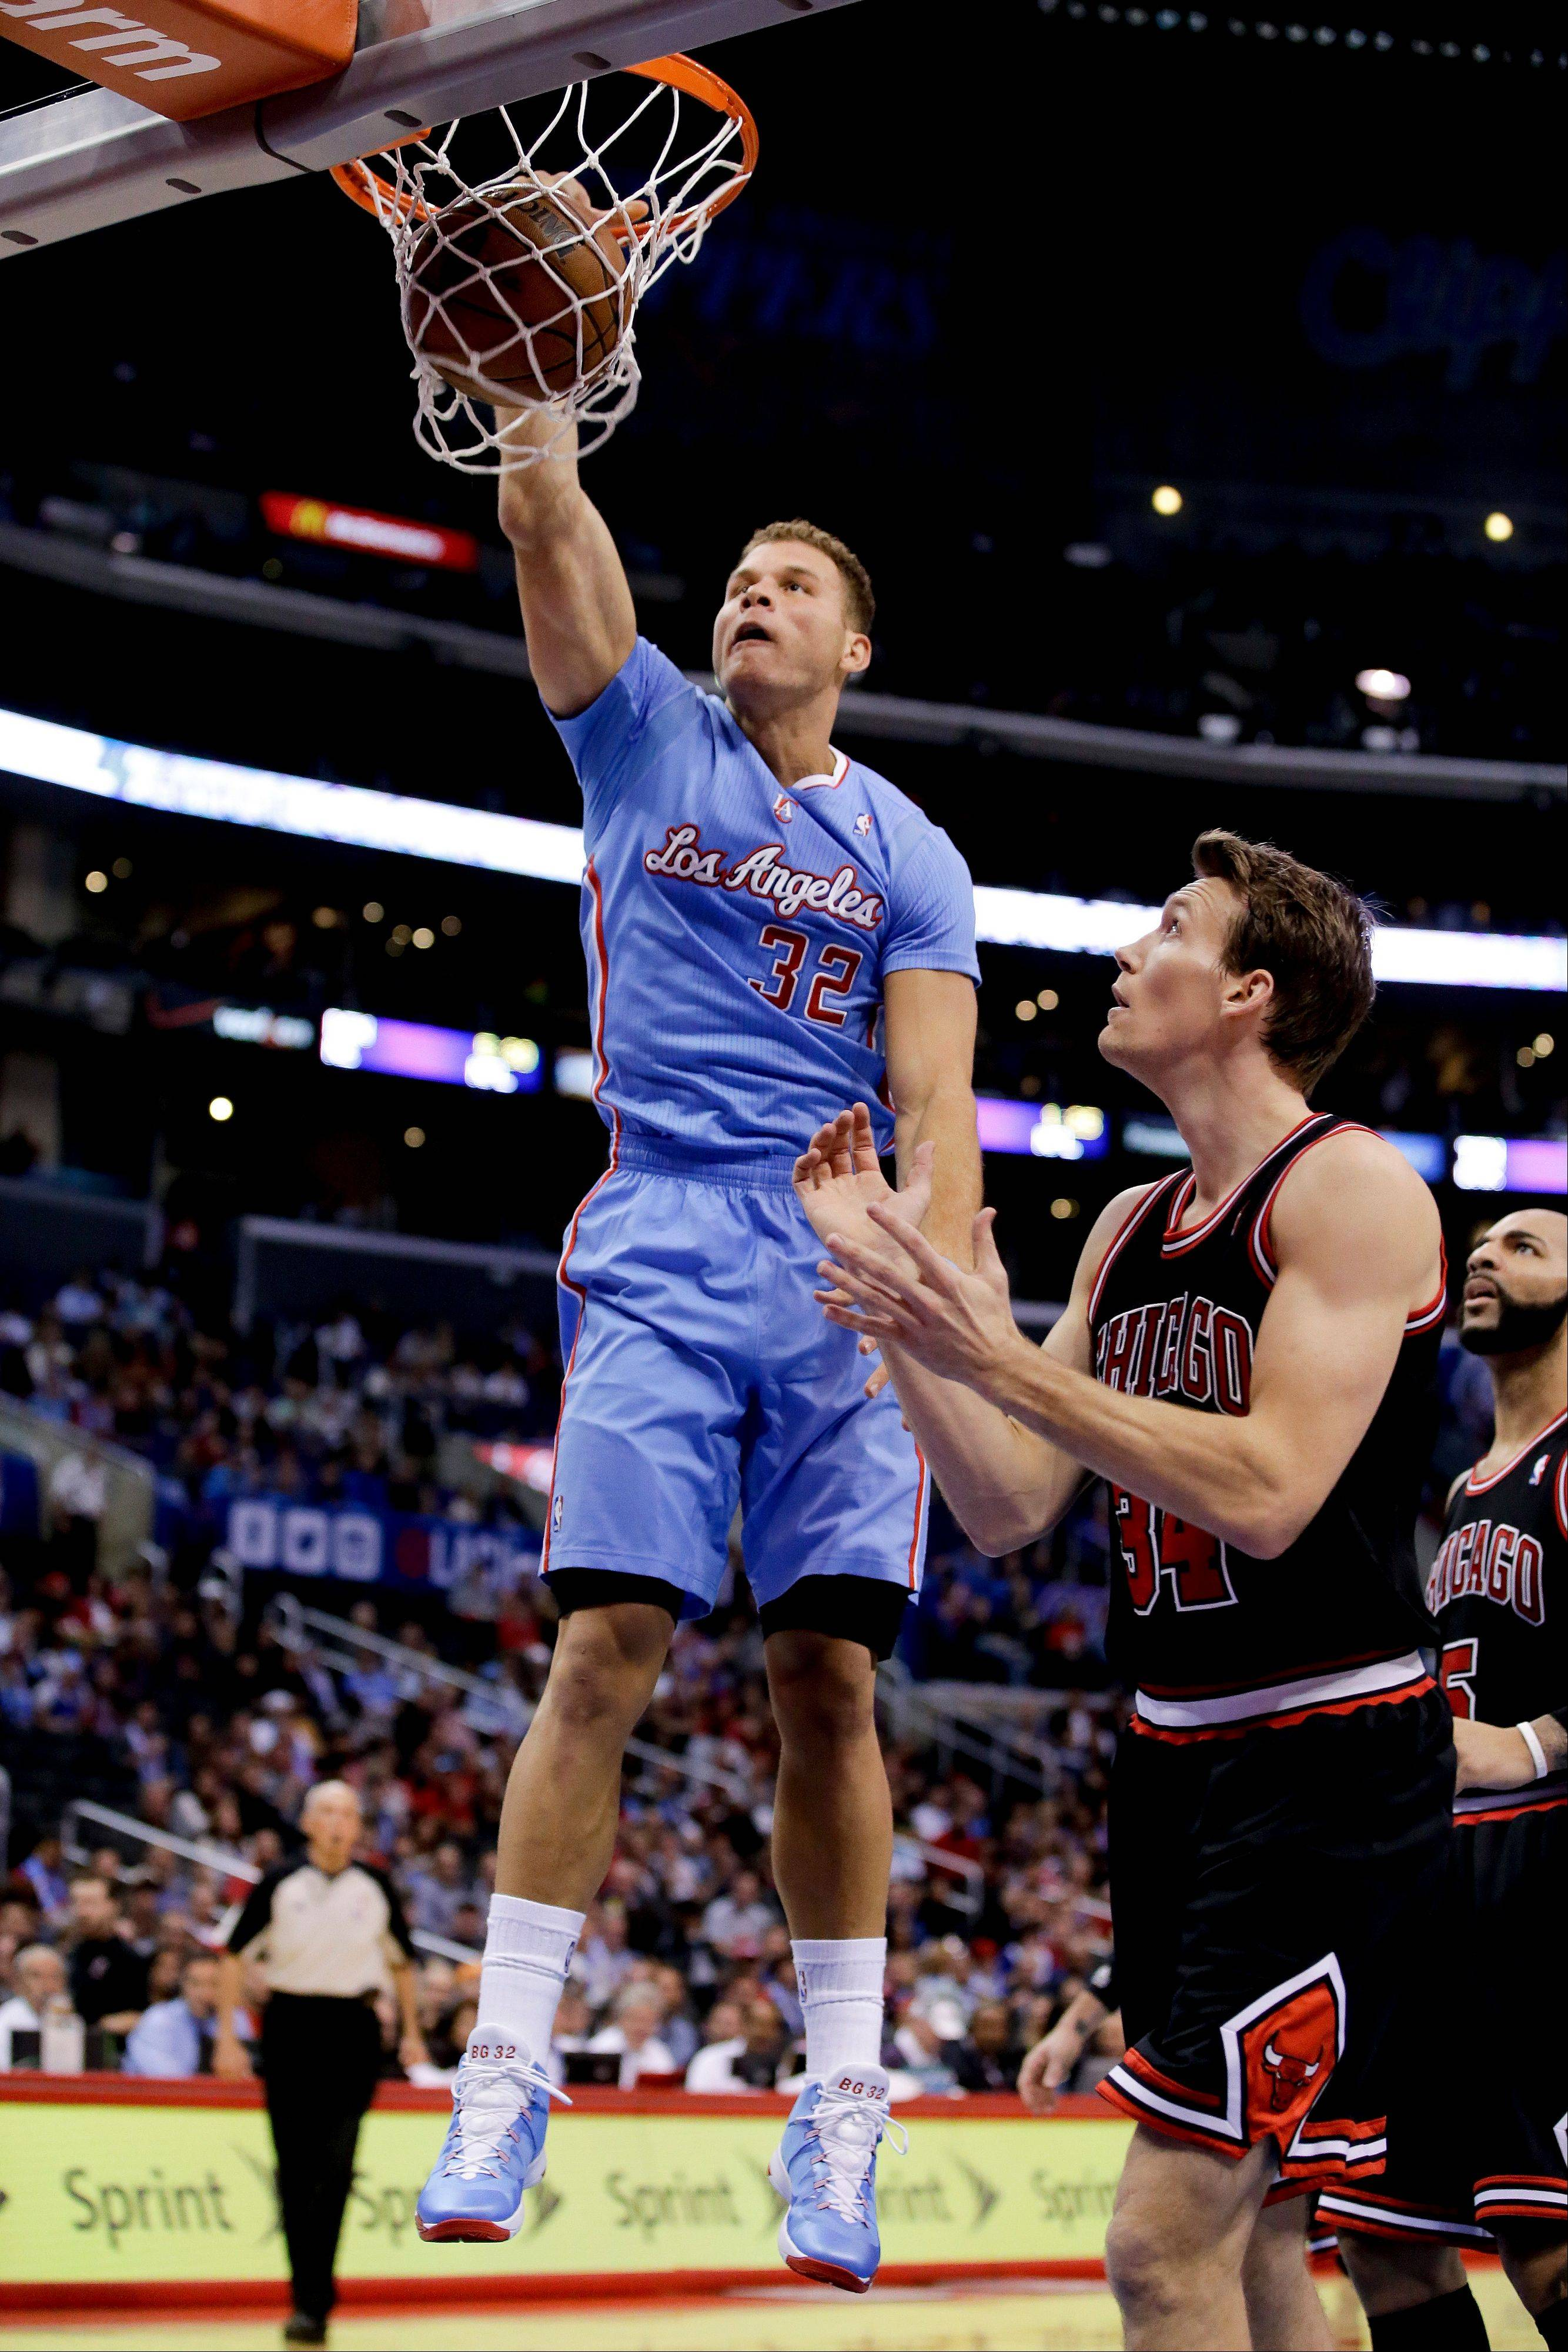 Los Angeles Clippers forward Blake Griffin, left, dunks as Chicago Bulls forward Mike Dunleavy looks on during the first half of an NBA basketball game in Los Angeles, Sunday, Nov. 24, 2013.